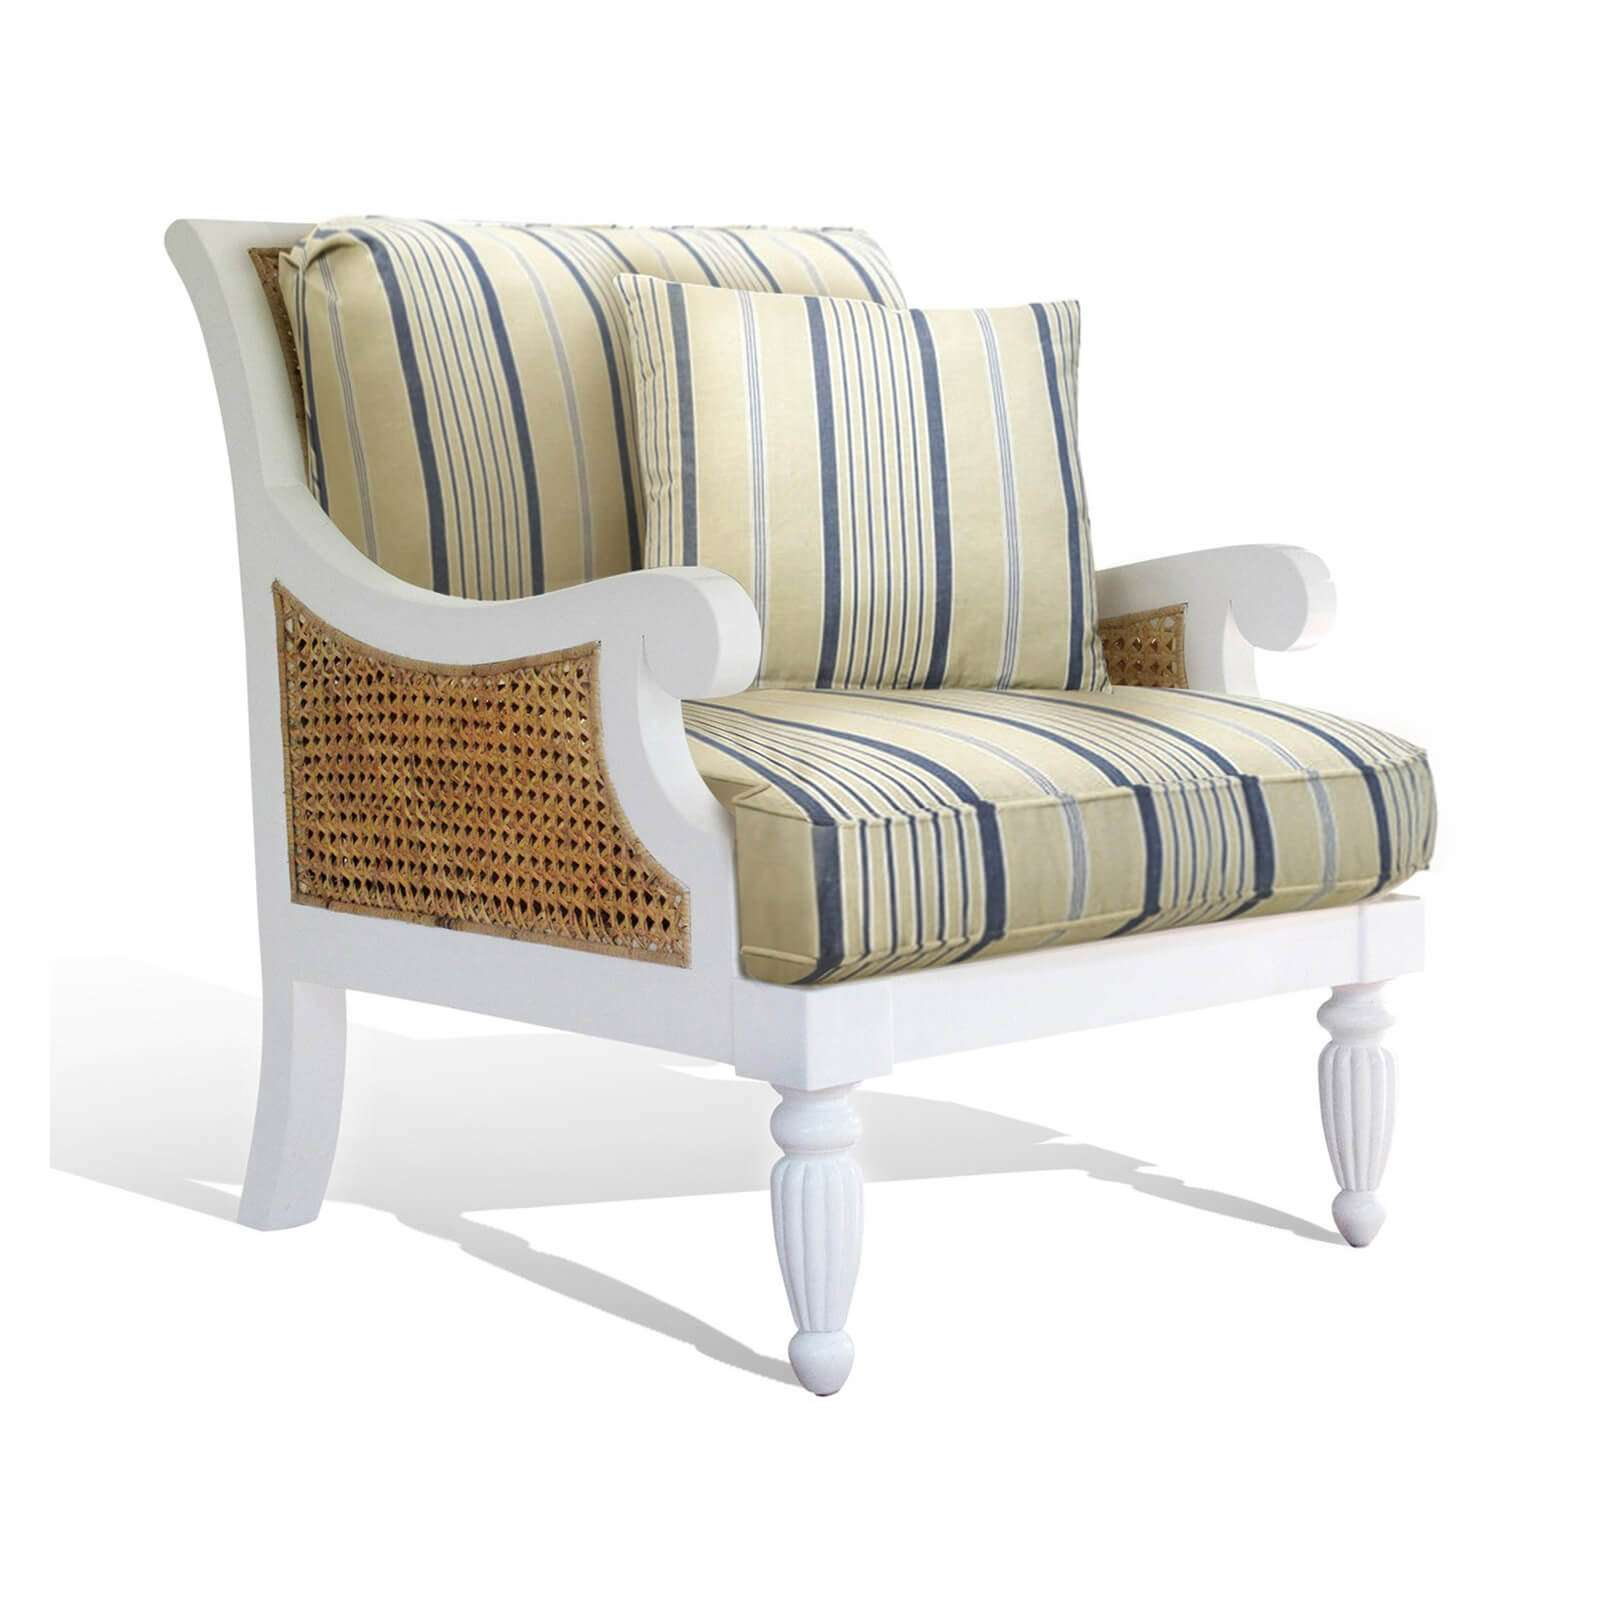 MADRAS ARM CHAIR 01 - STUART MEMBERY HOME COLLECTION